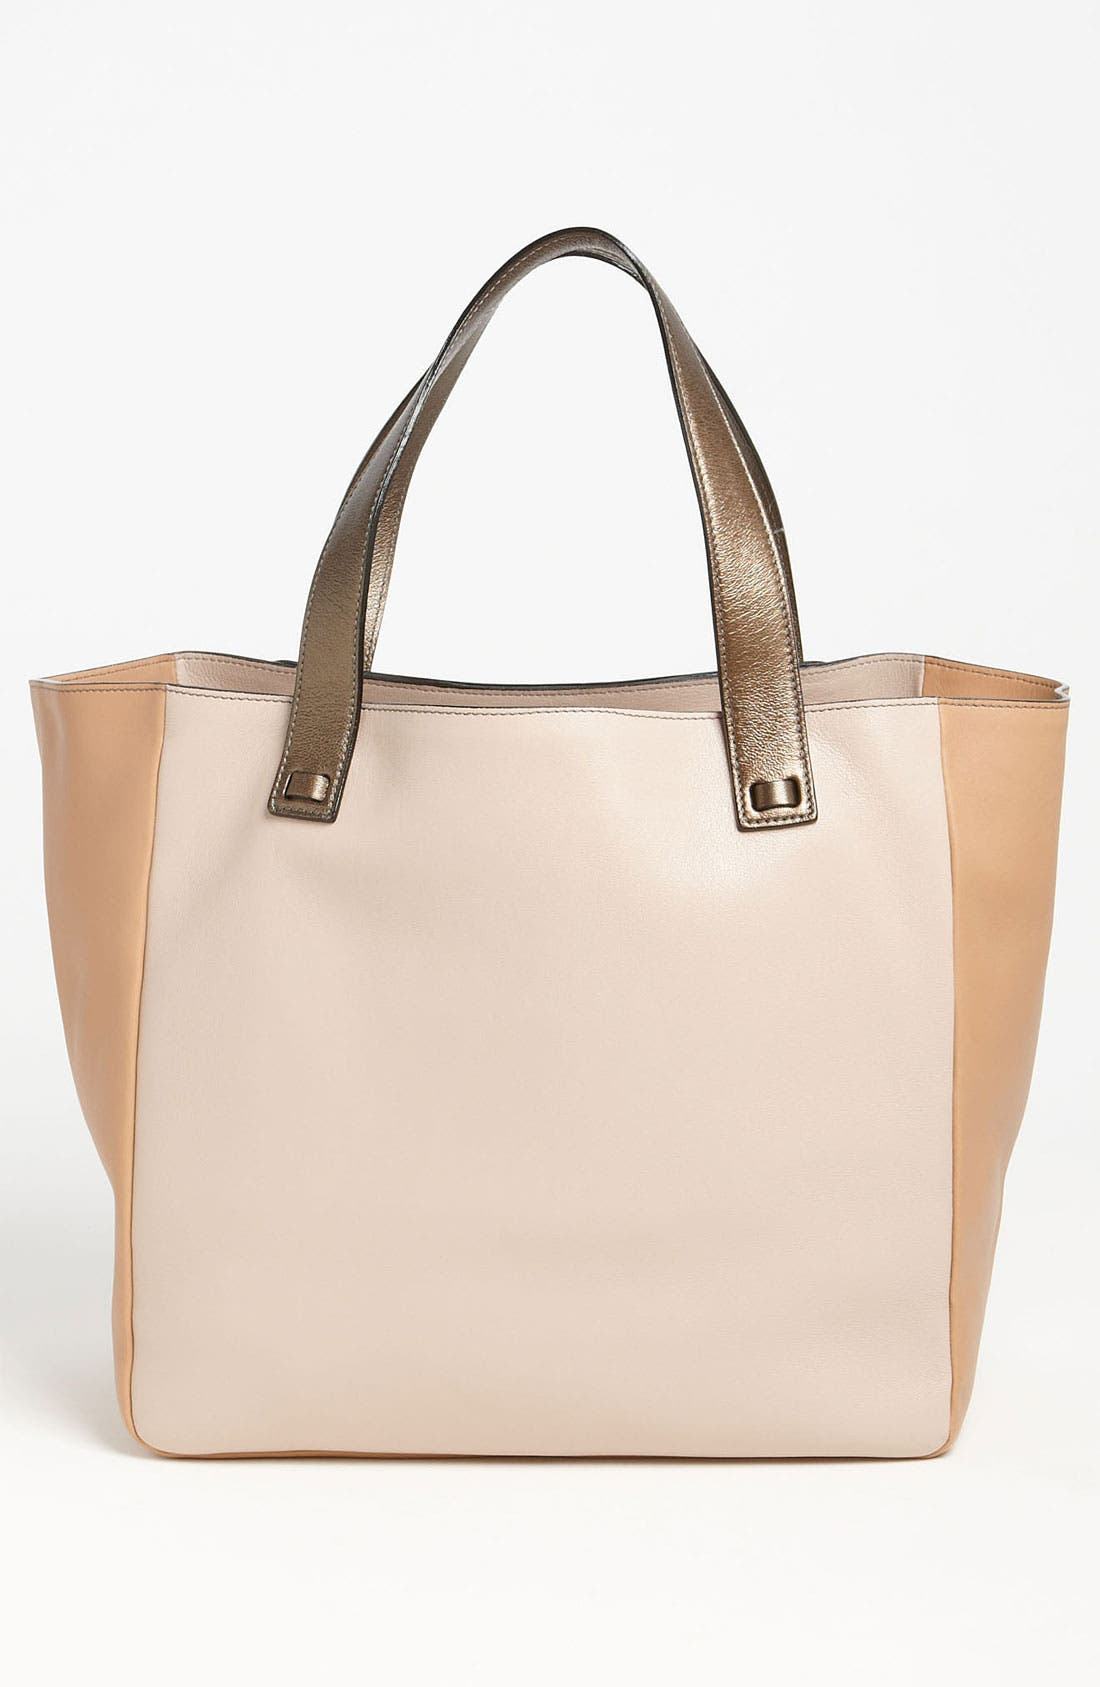 Alternate Image 3  - MARC JACOBS 'Khaki' Tote